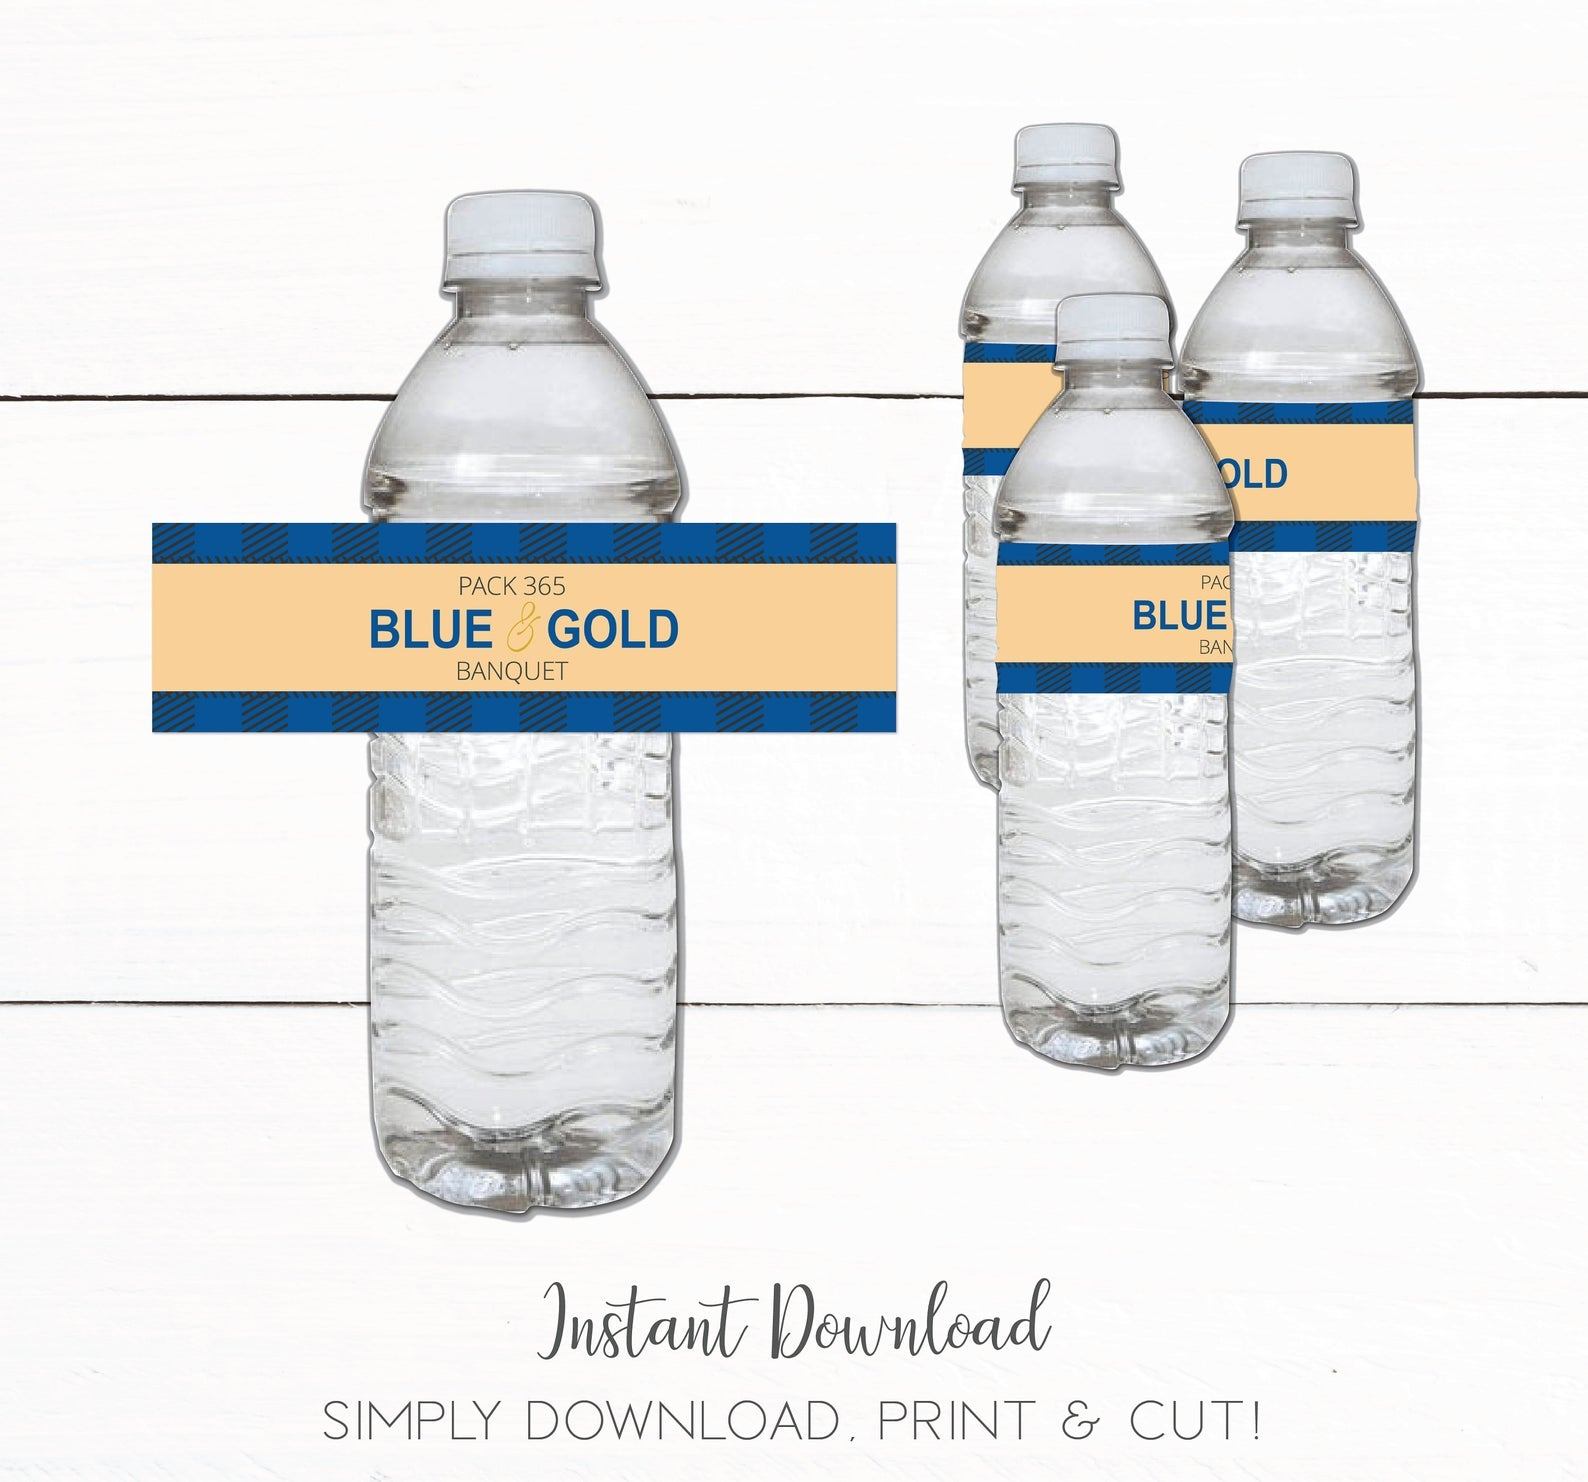 Cub Scout Blue and Gold Banquet Water Bottle Label